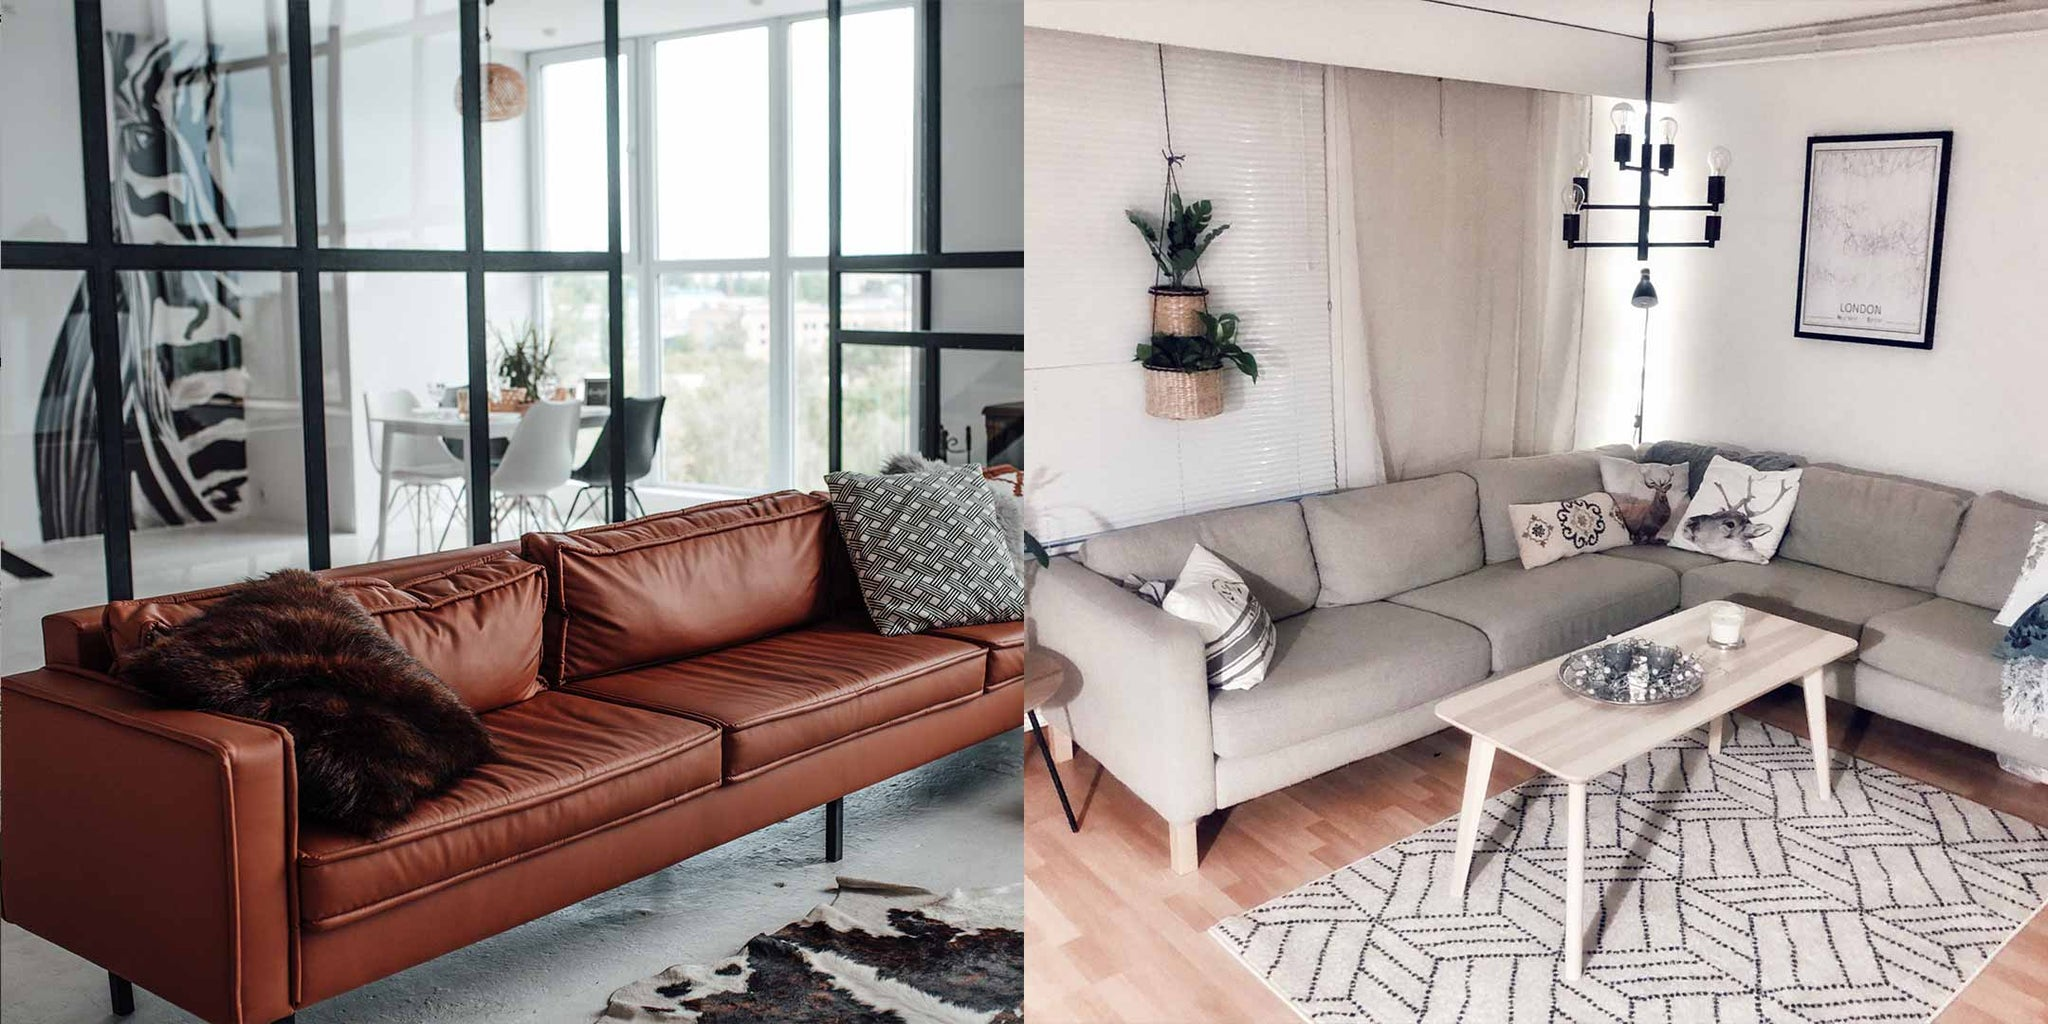 Leather or Fabric Sofa - Variety